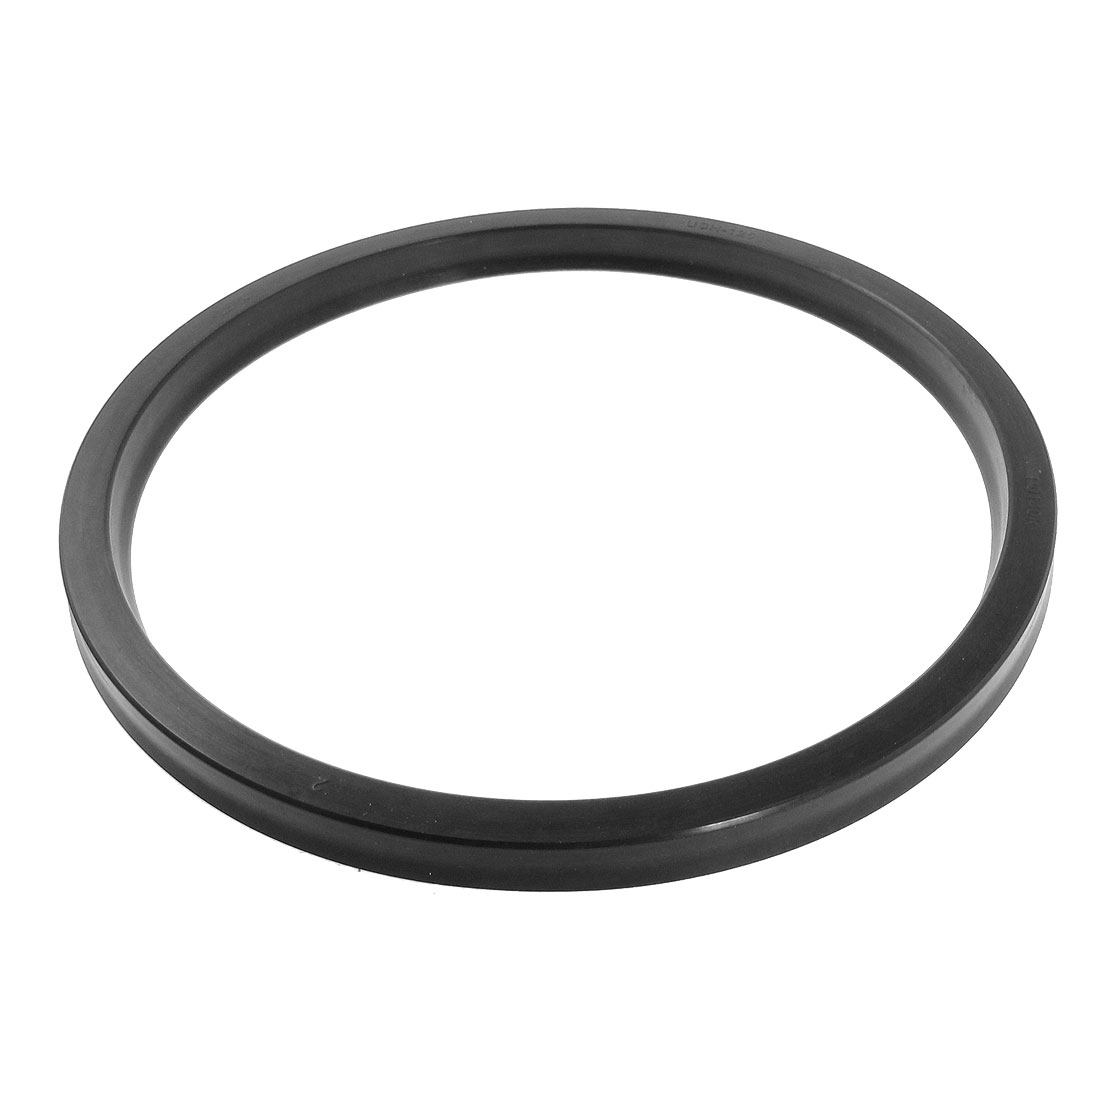 Cylinder Rod 130 x 145 x 9mm USH Rubber Sealing Oil Seal Black